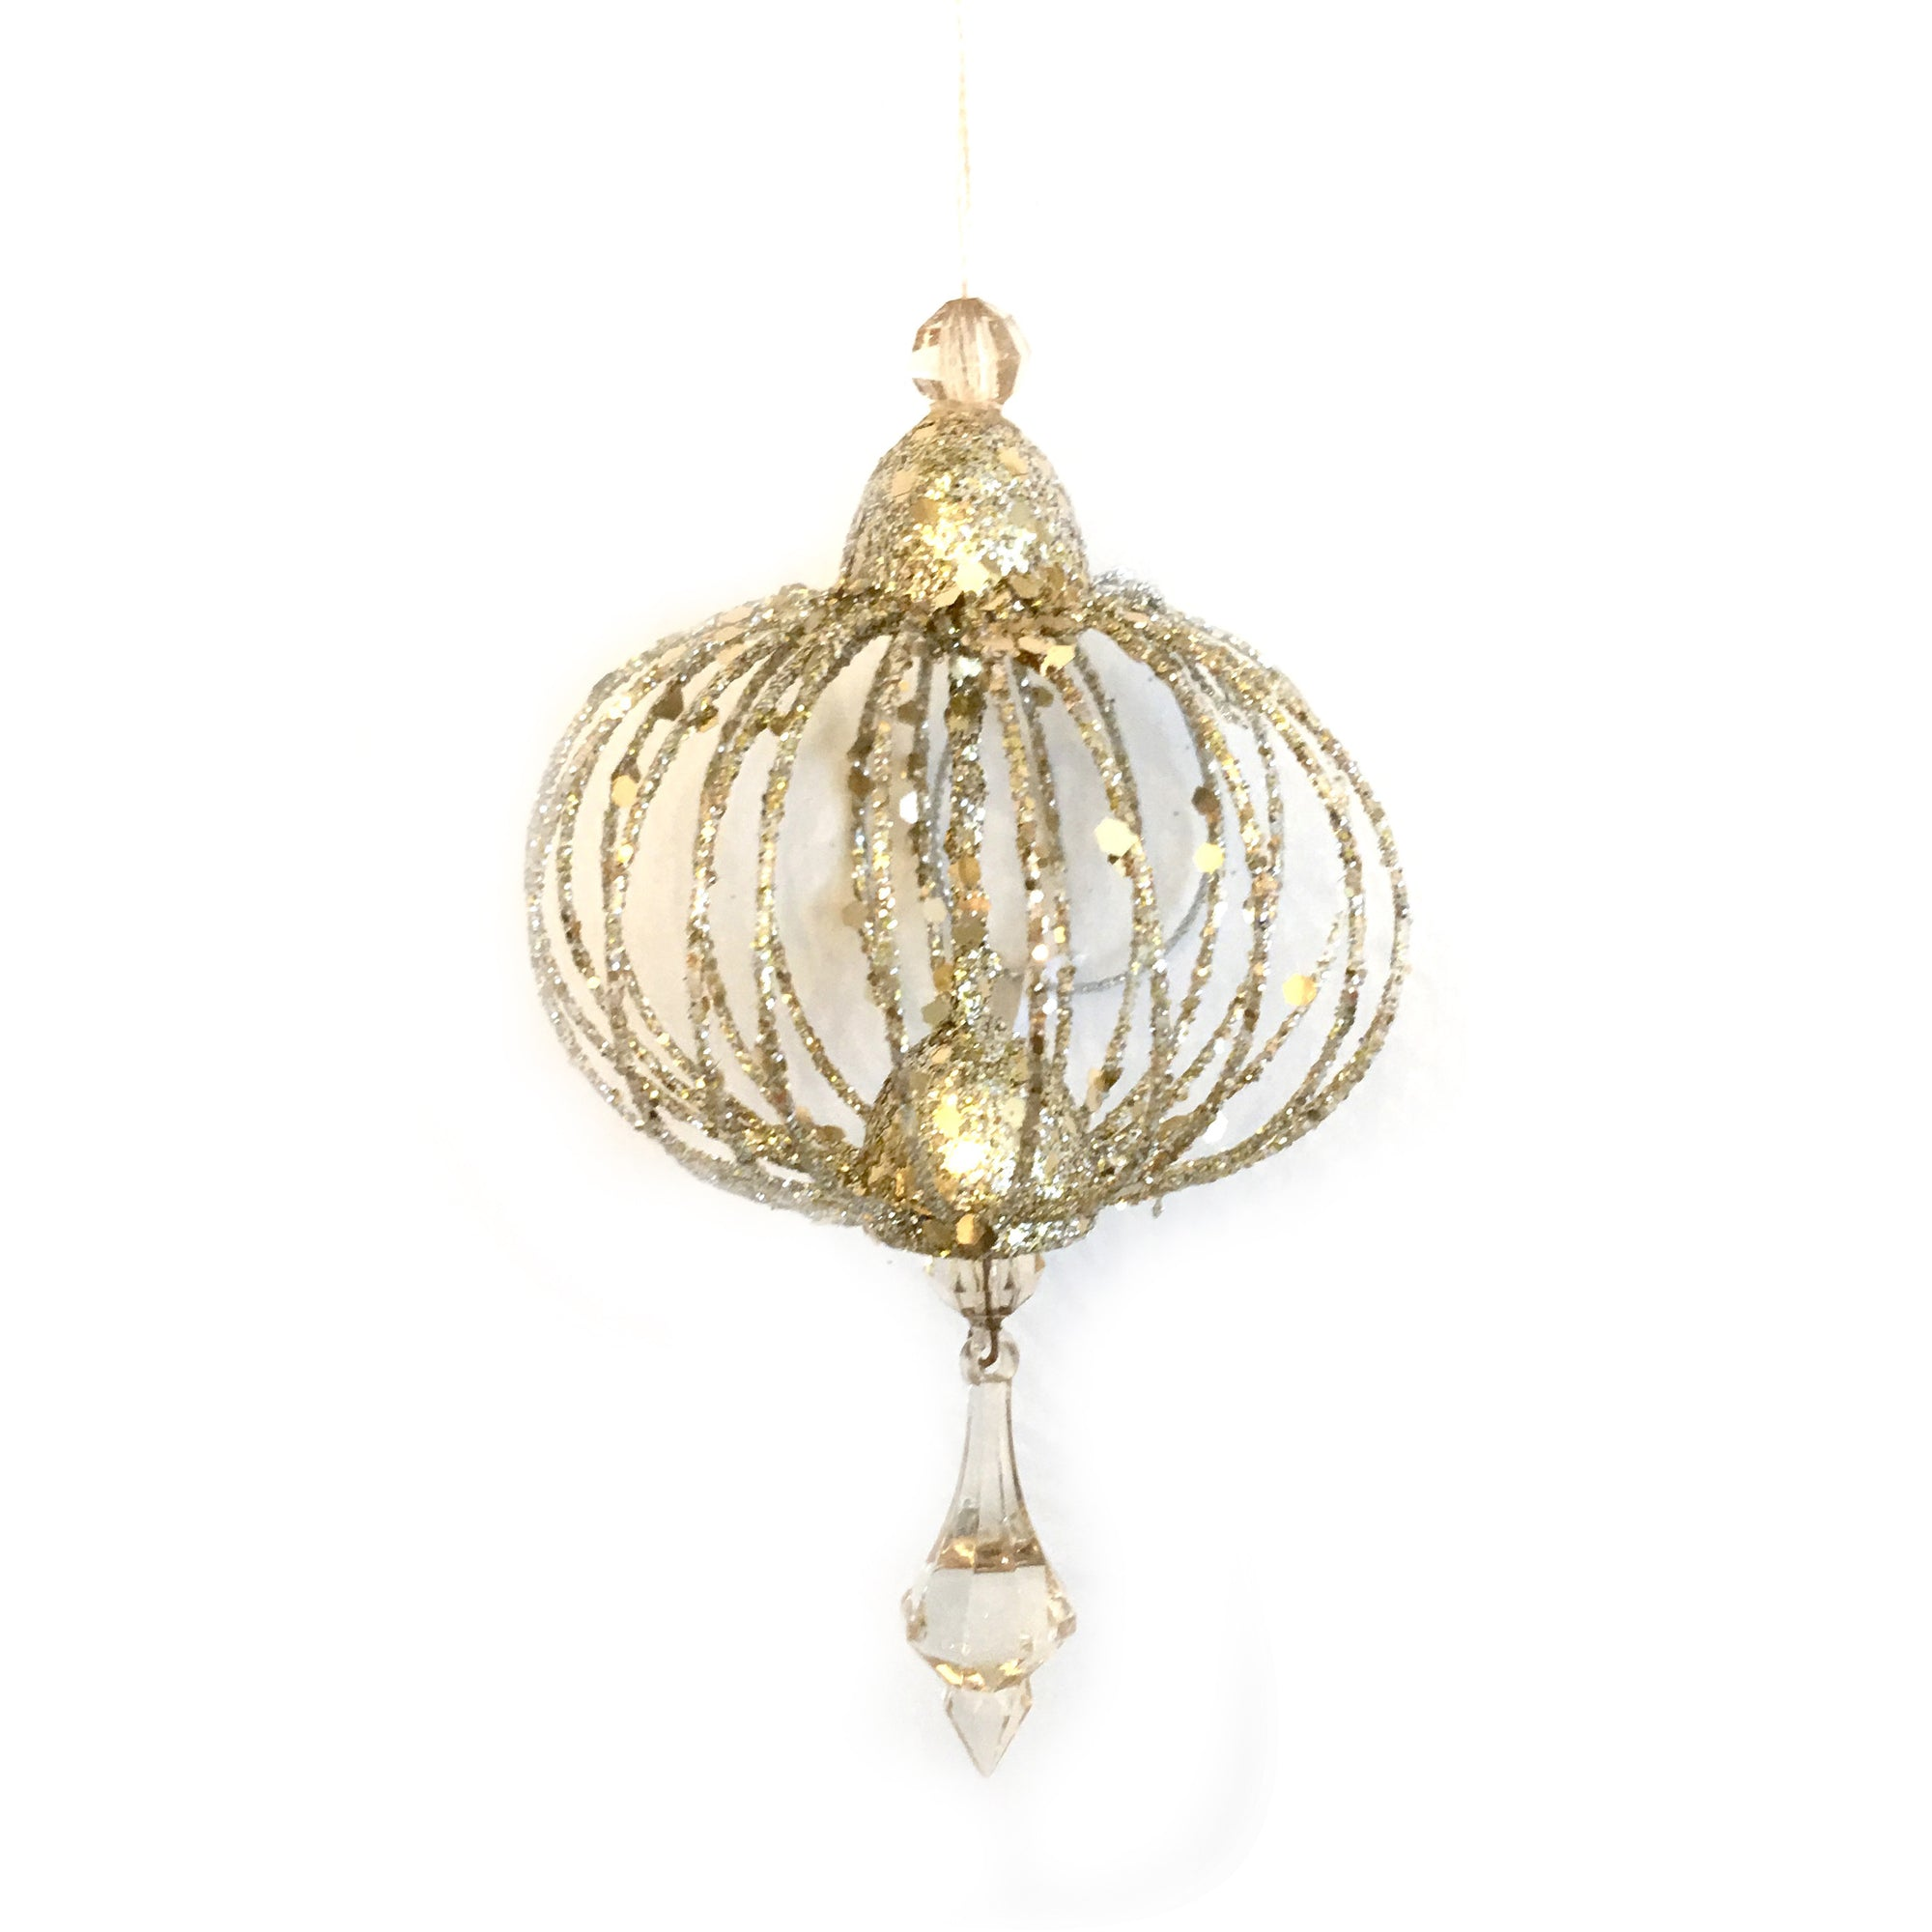 Jim Marvin Champagne Gold Wire Finial Ornament, JM-Jim Marvin, Putti Fine Furnishings